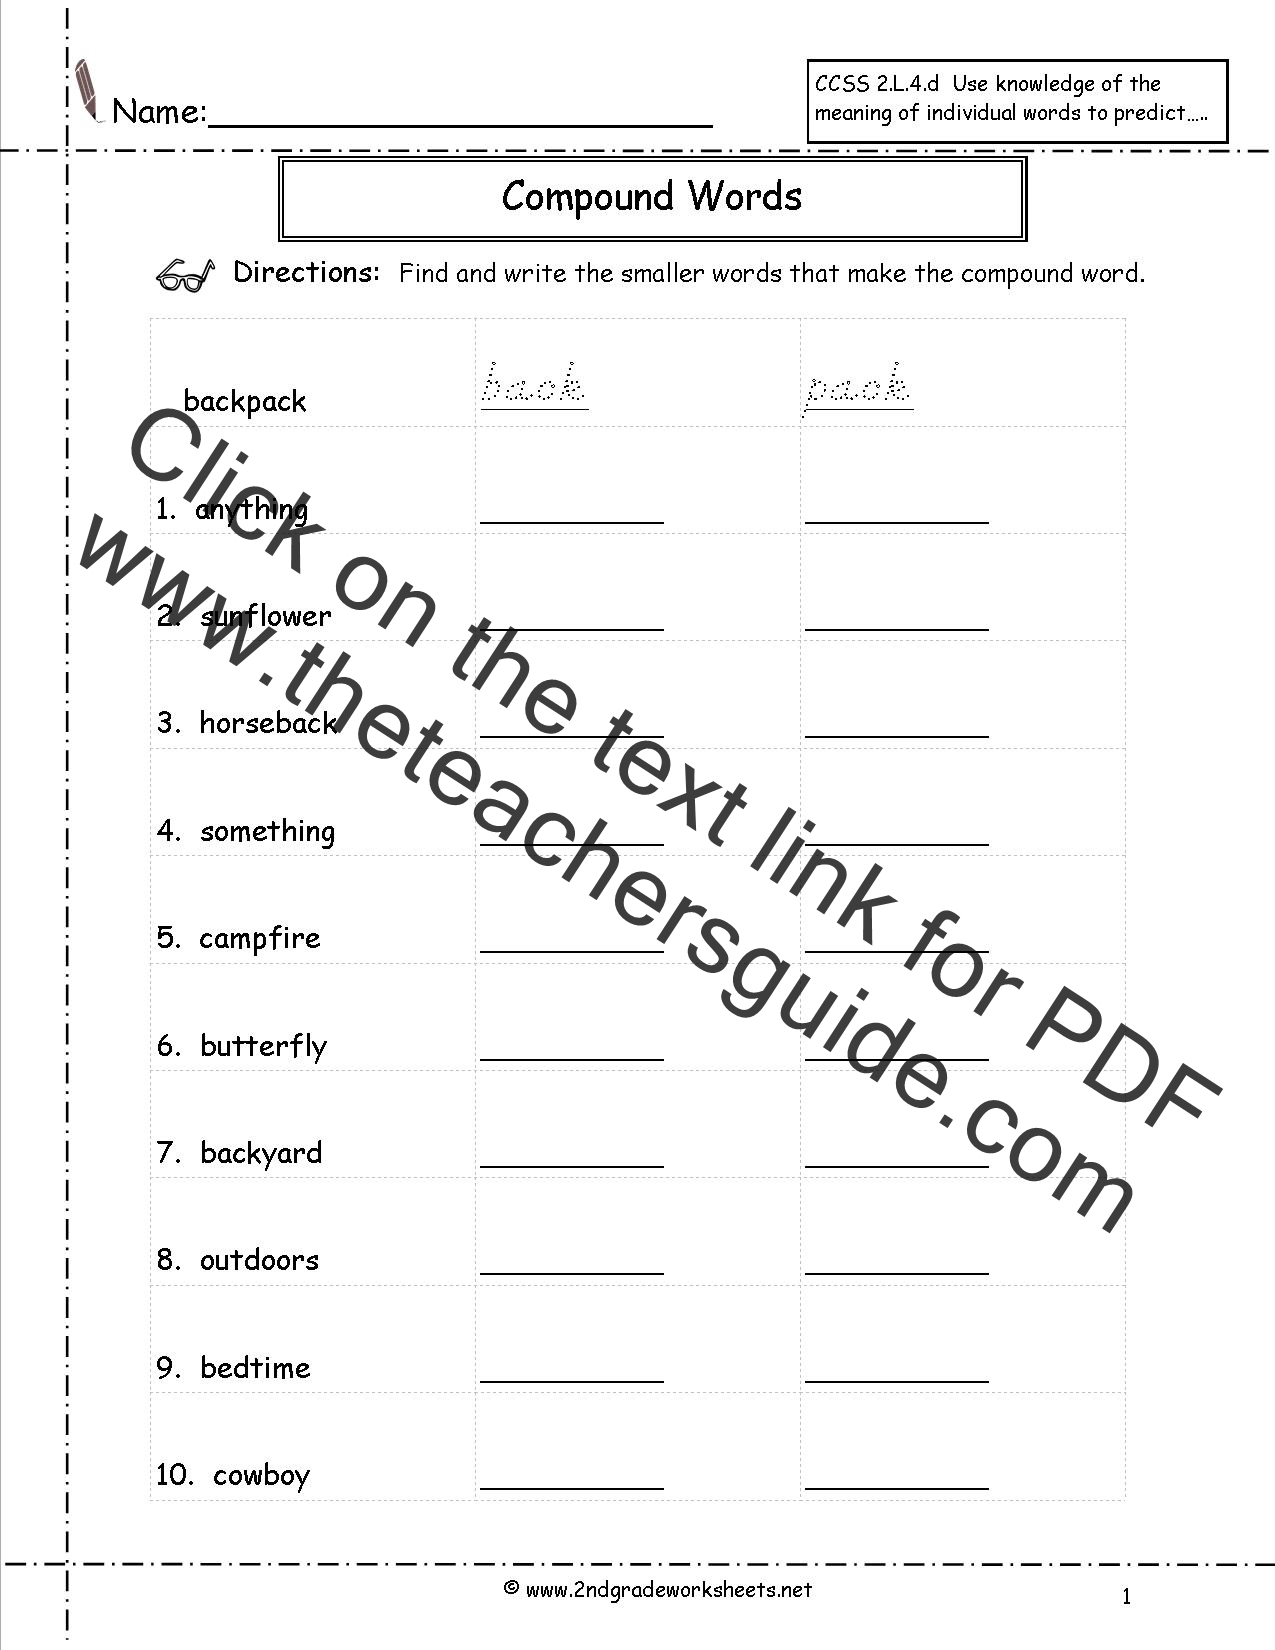 Worksheets Printable Worksheets For 2nd Grade free languagegrammar worksheets and printouts compound words worksheets